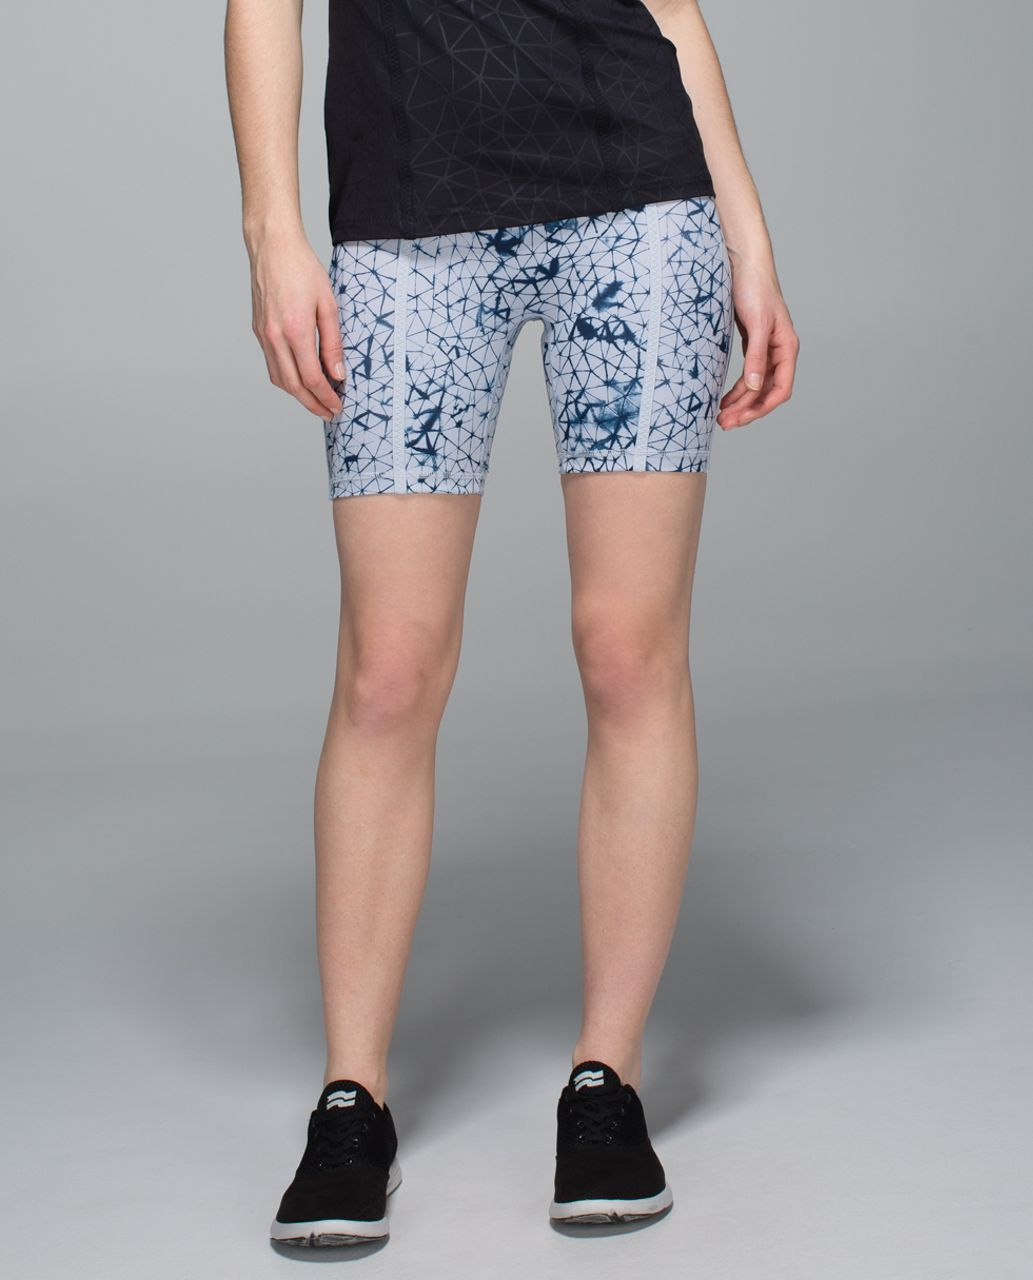 Lululemon Pedal Pace Short - Star Crushed Silver Fox Deep Navy / Deep Navy